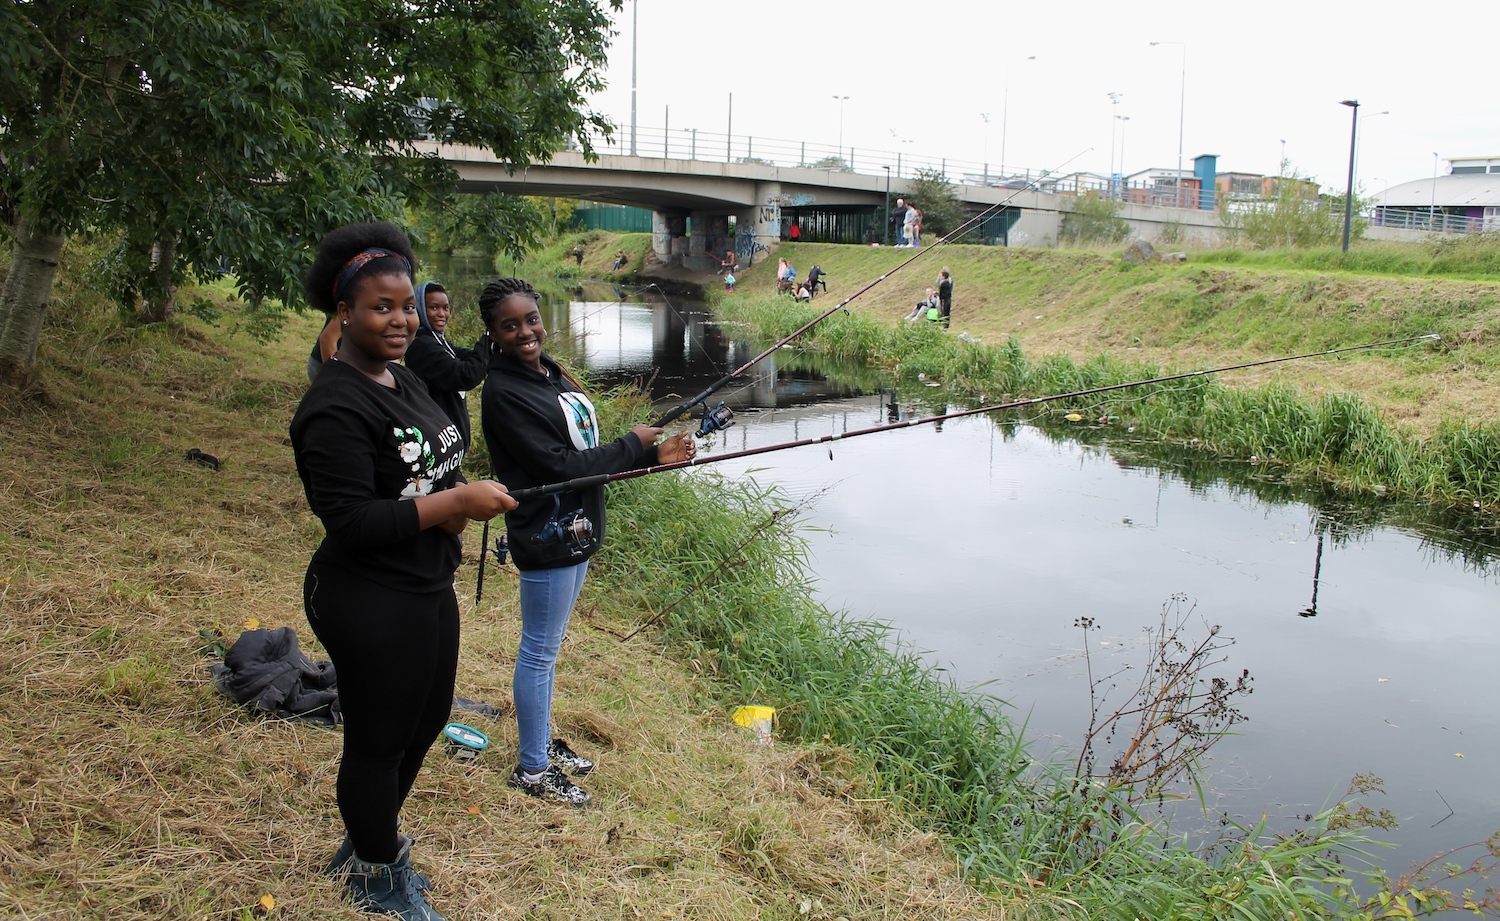 Youth Work Ireland Week 2021 - Young people enjoying a spot of fishing with Limerick Youth Service in 2019.